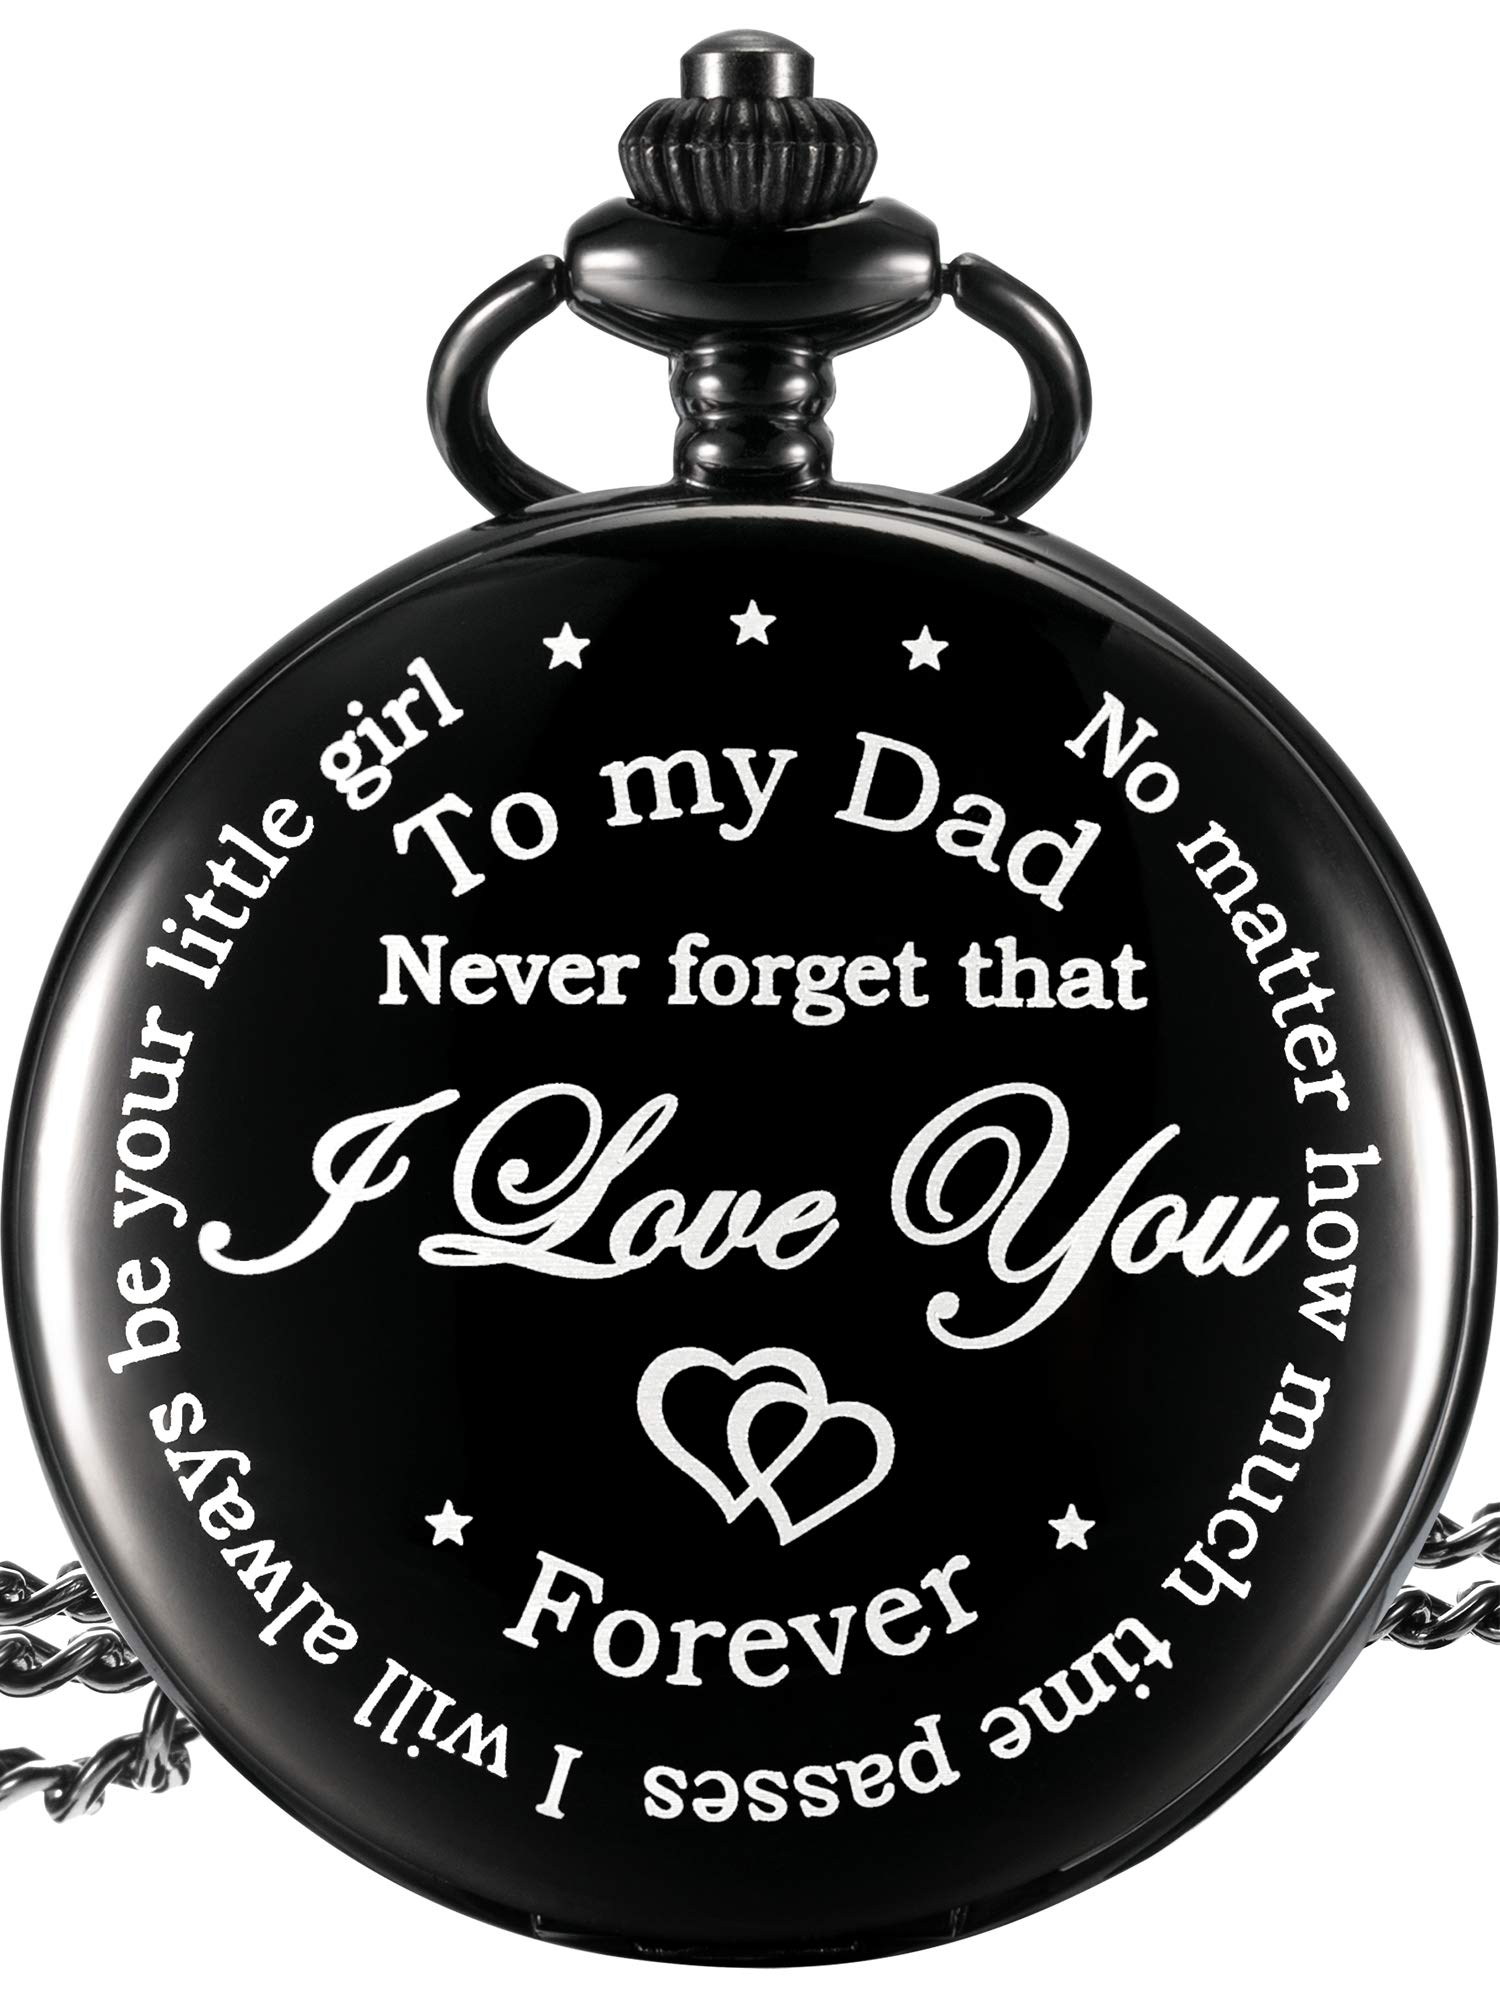 Dad Gift from Daughter to Father Engraved Pocket Watch - No Matter How Much Time Passes, I Will Always Be Your Little Girl (Black)